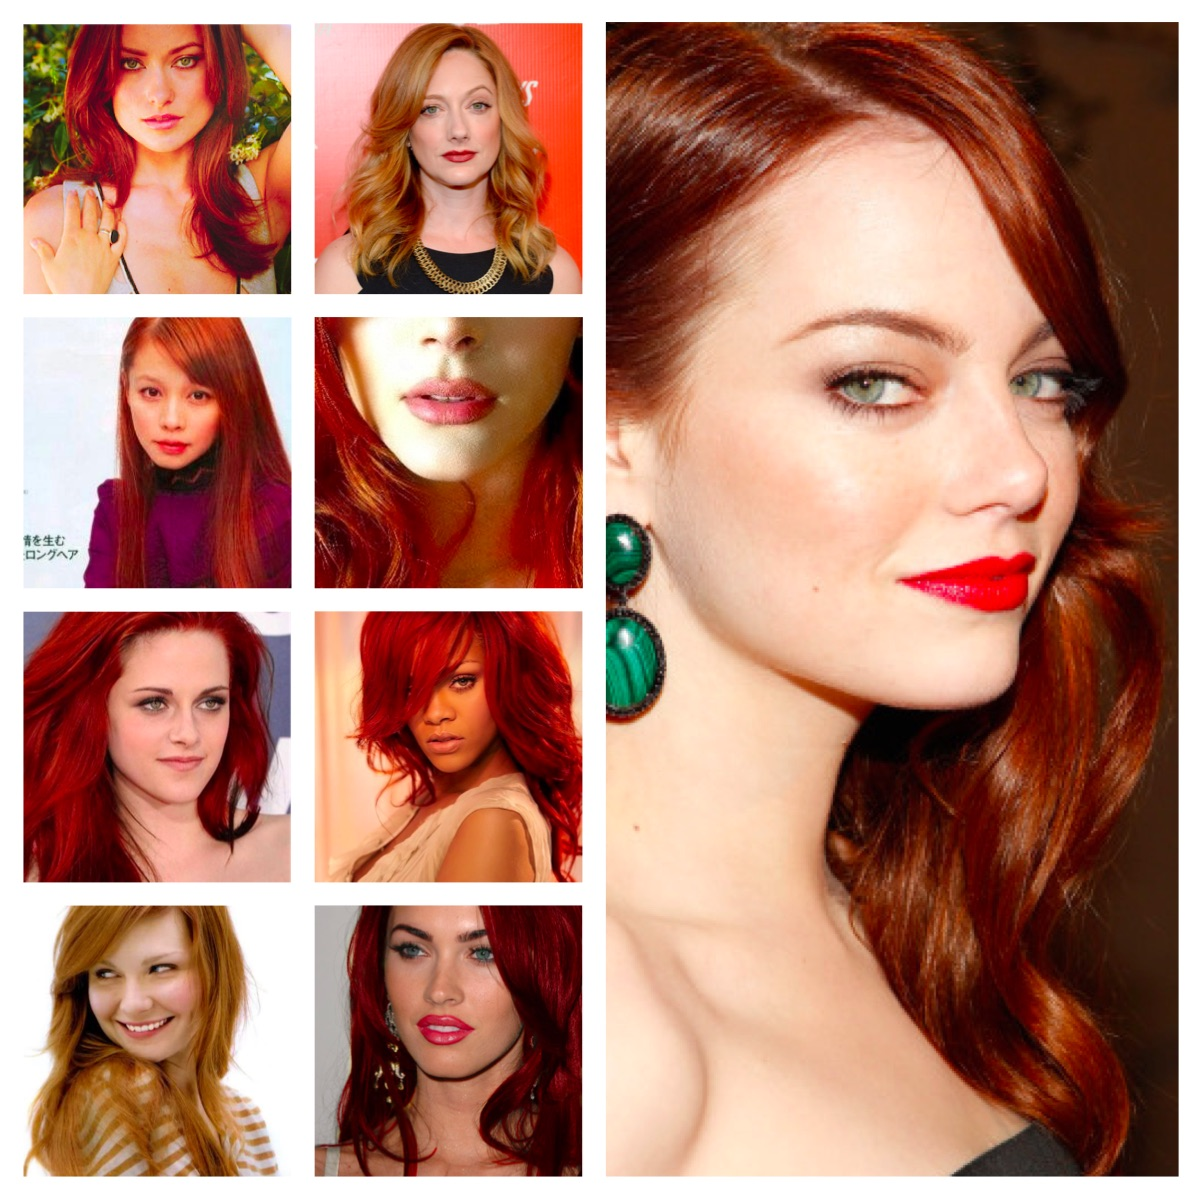 Redhead celebrities in a collage